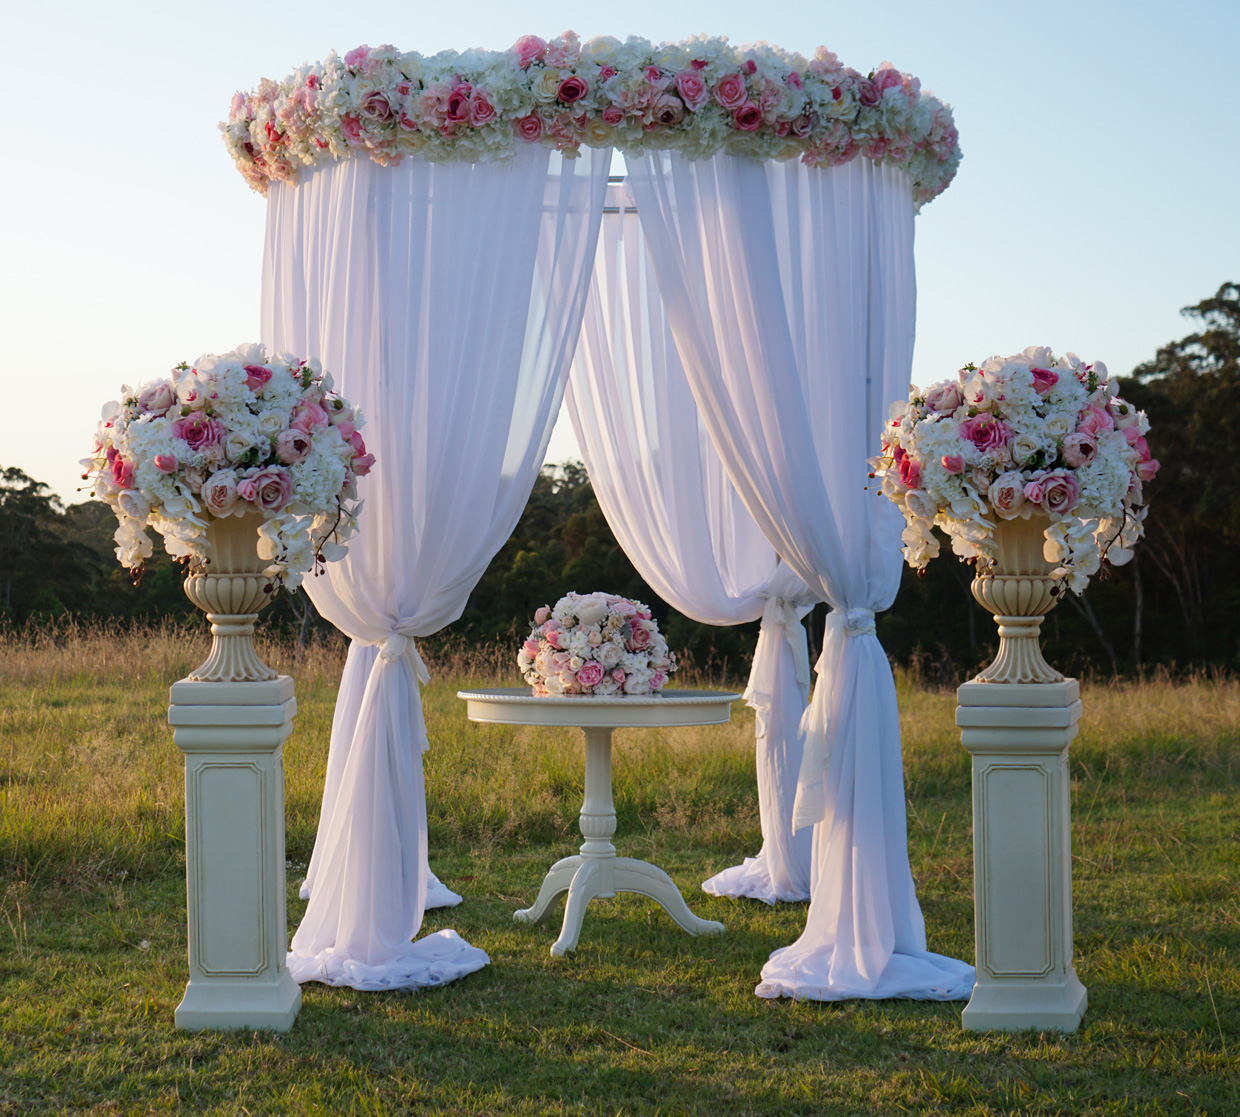 wedding-decorationsl-canopy-chuppah-hire-sydney - Wedding Decorations By Naz & wedding-decorationsl-canopy-chuppah-hire-sydney - Wedding ...